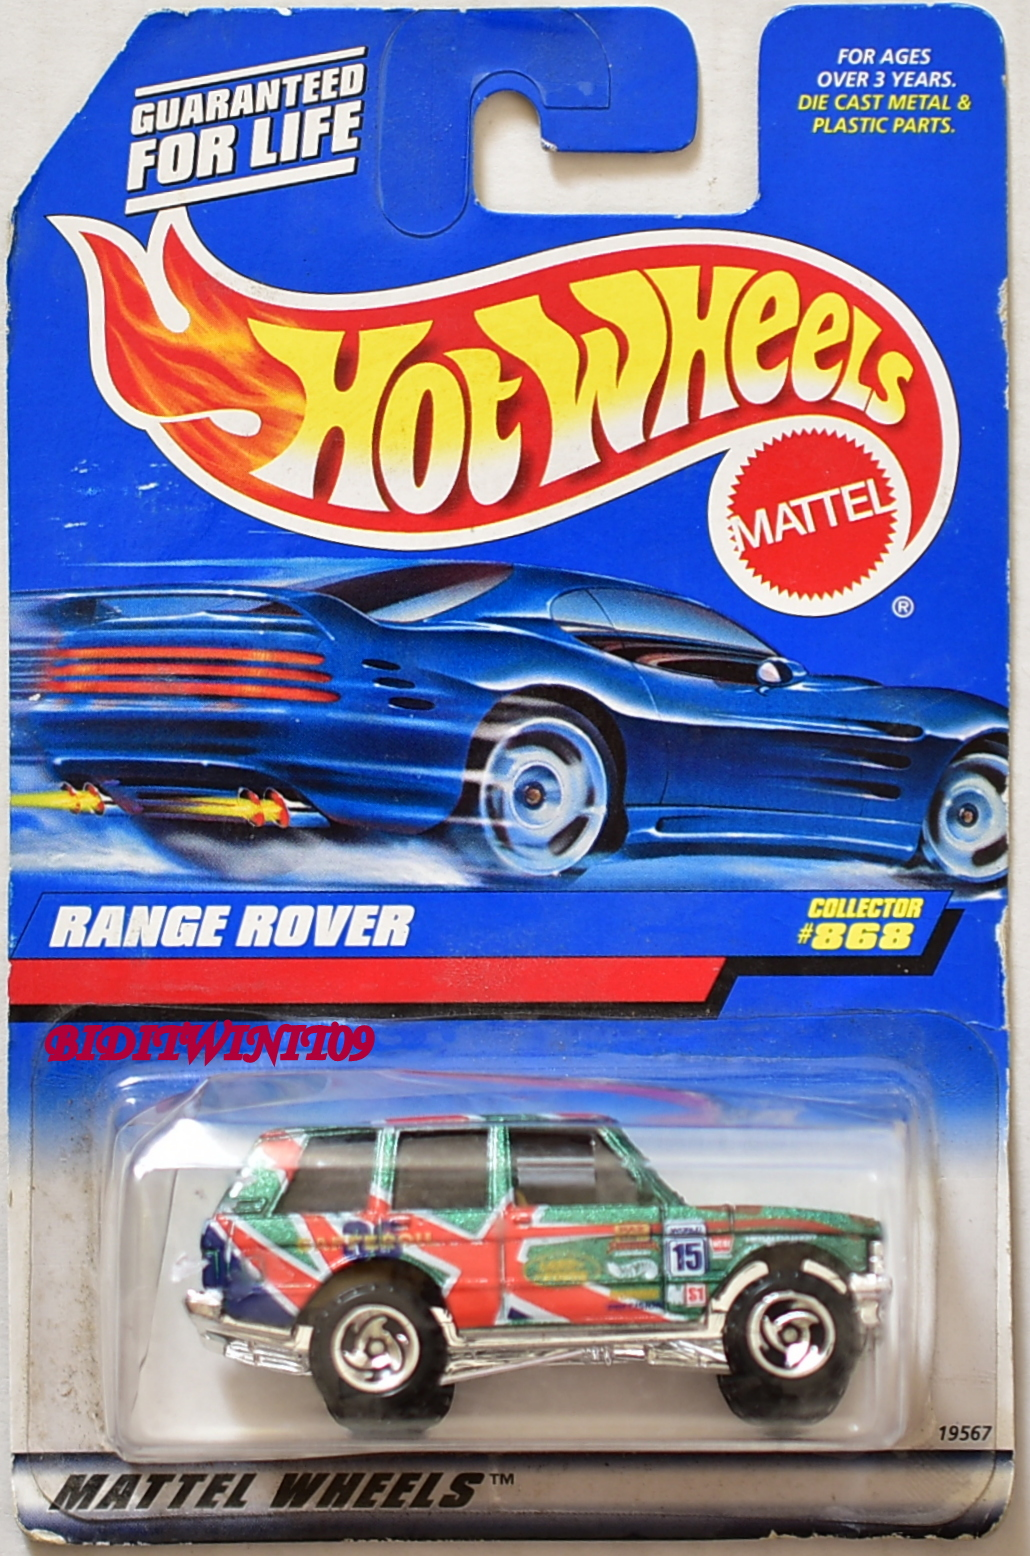 HOT WHEELS 1998 RANGE ROVER COLLECTOR #868